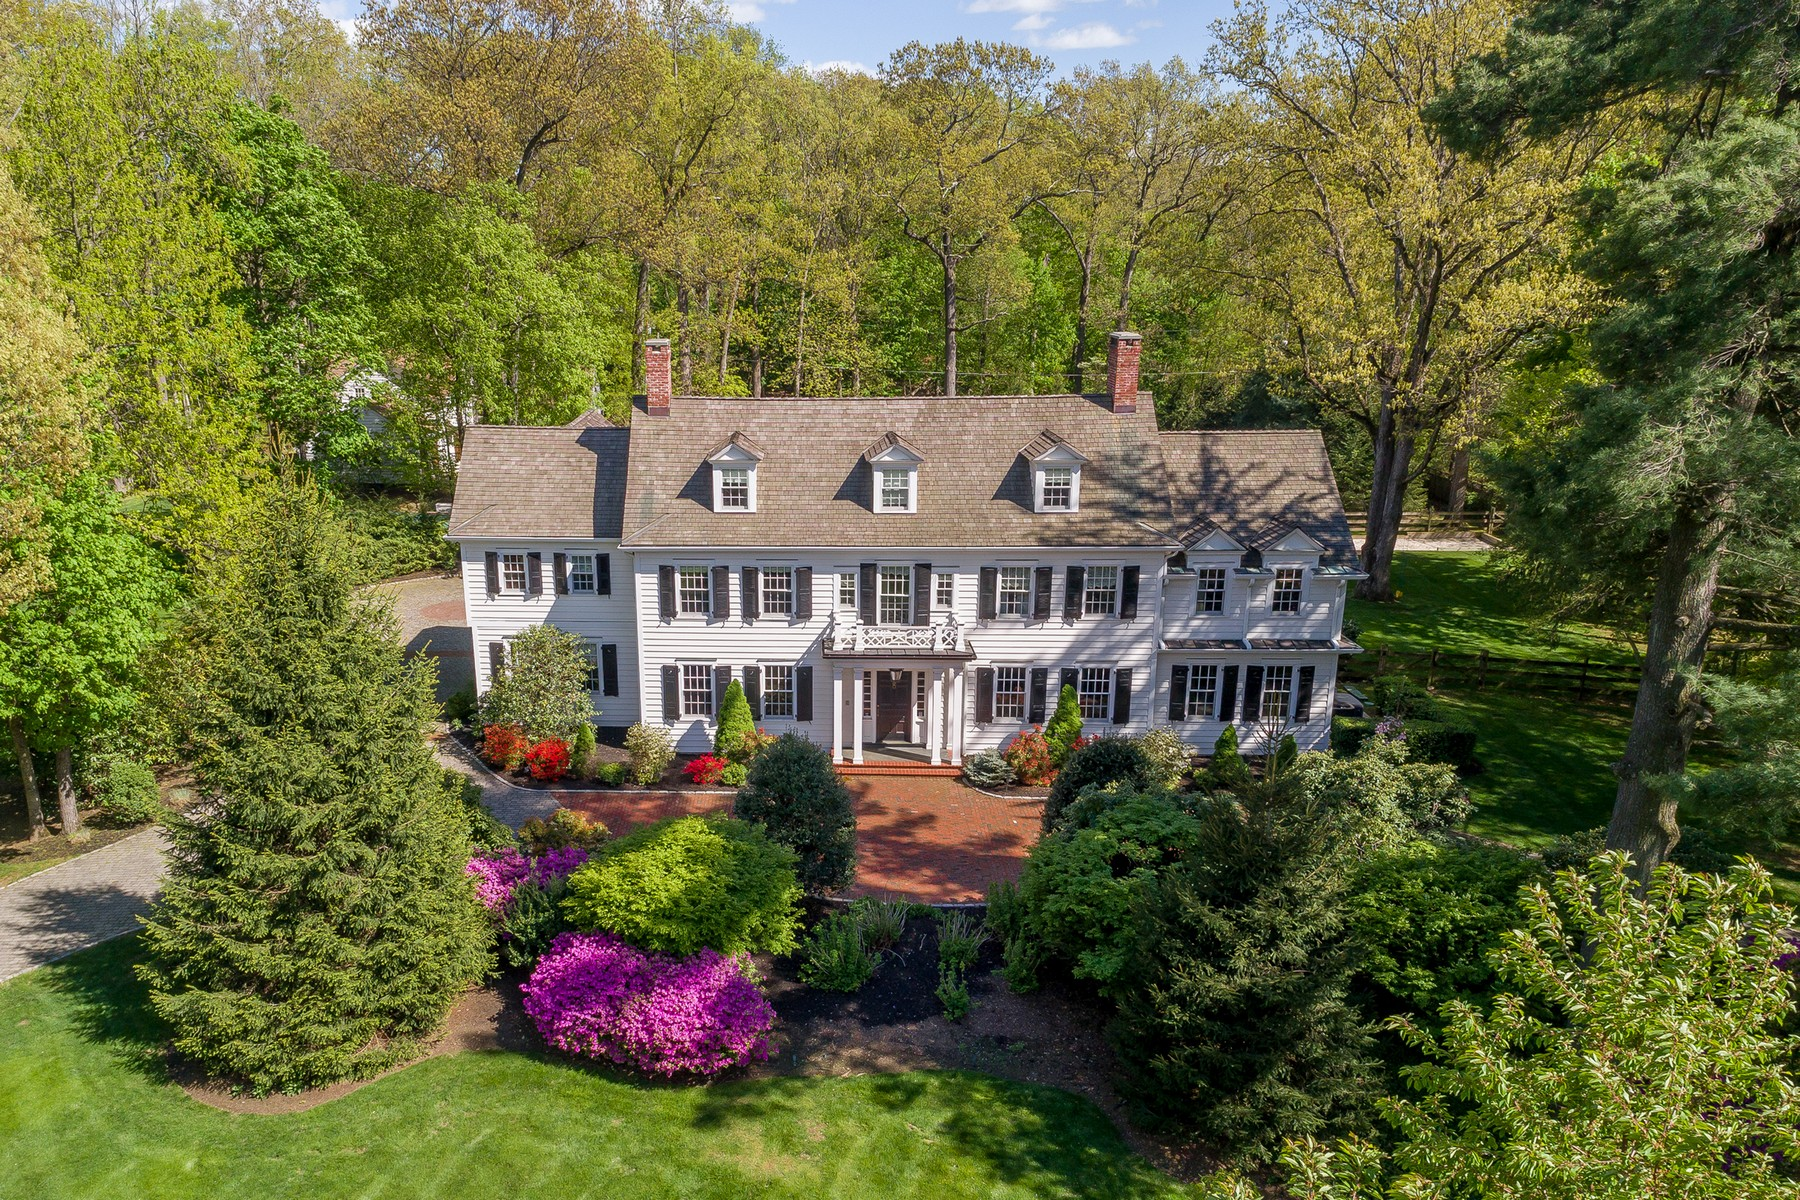 Single Family Home for Sale at Colonial Revival Home 21 Normandy Parkway Morris Township, New Jersey 07960 United States